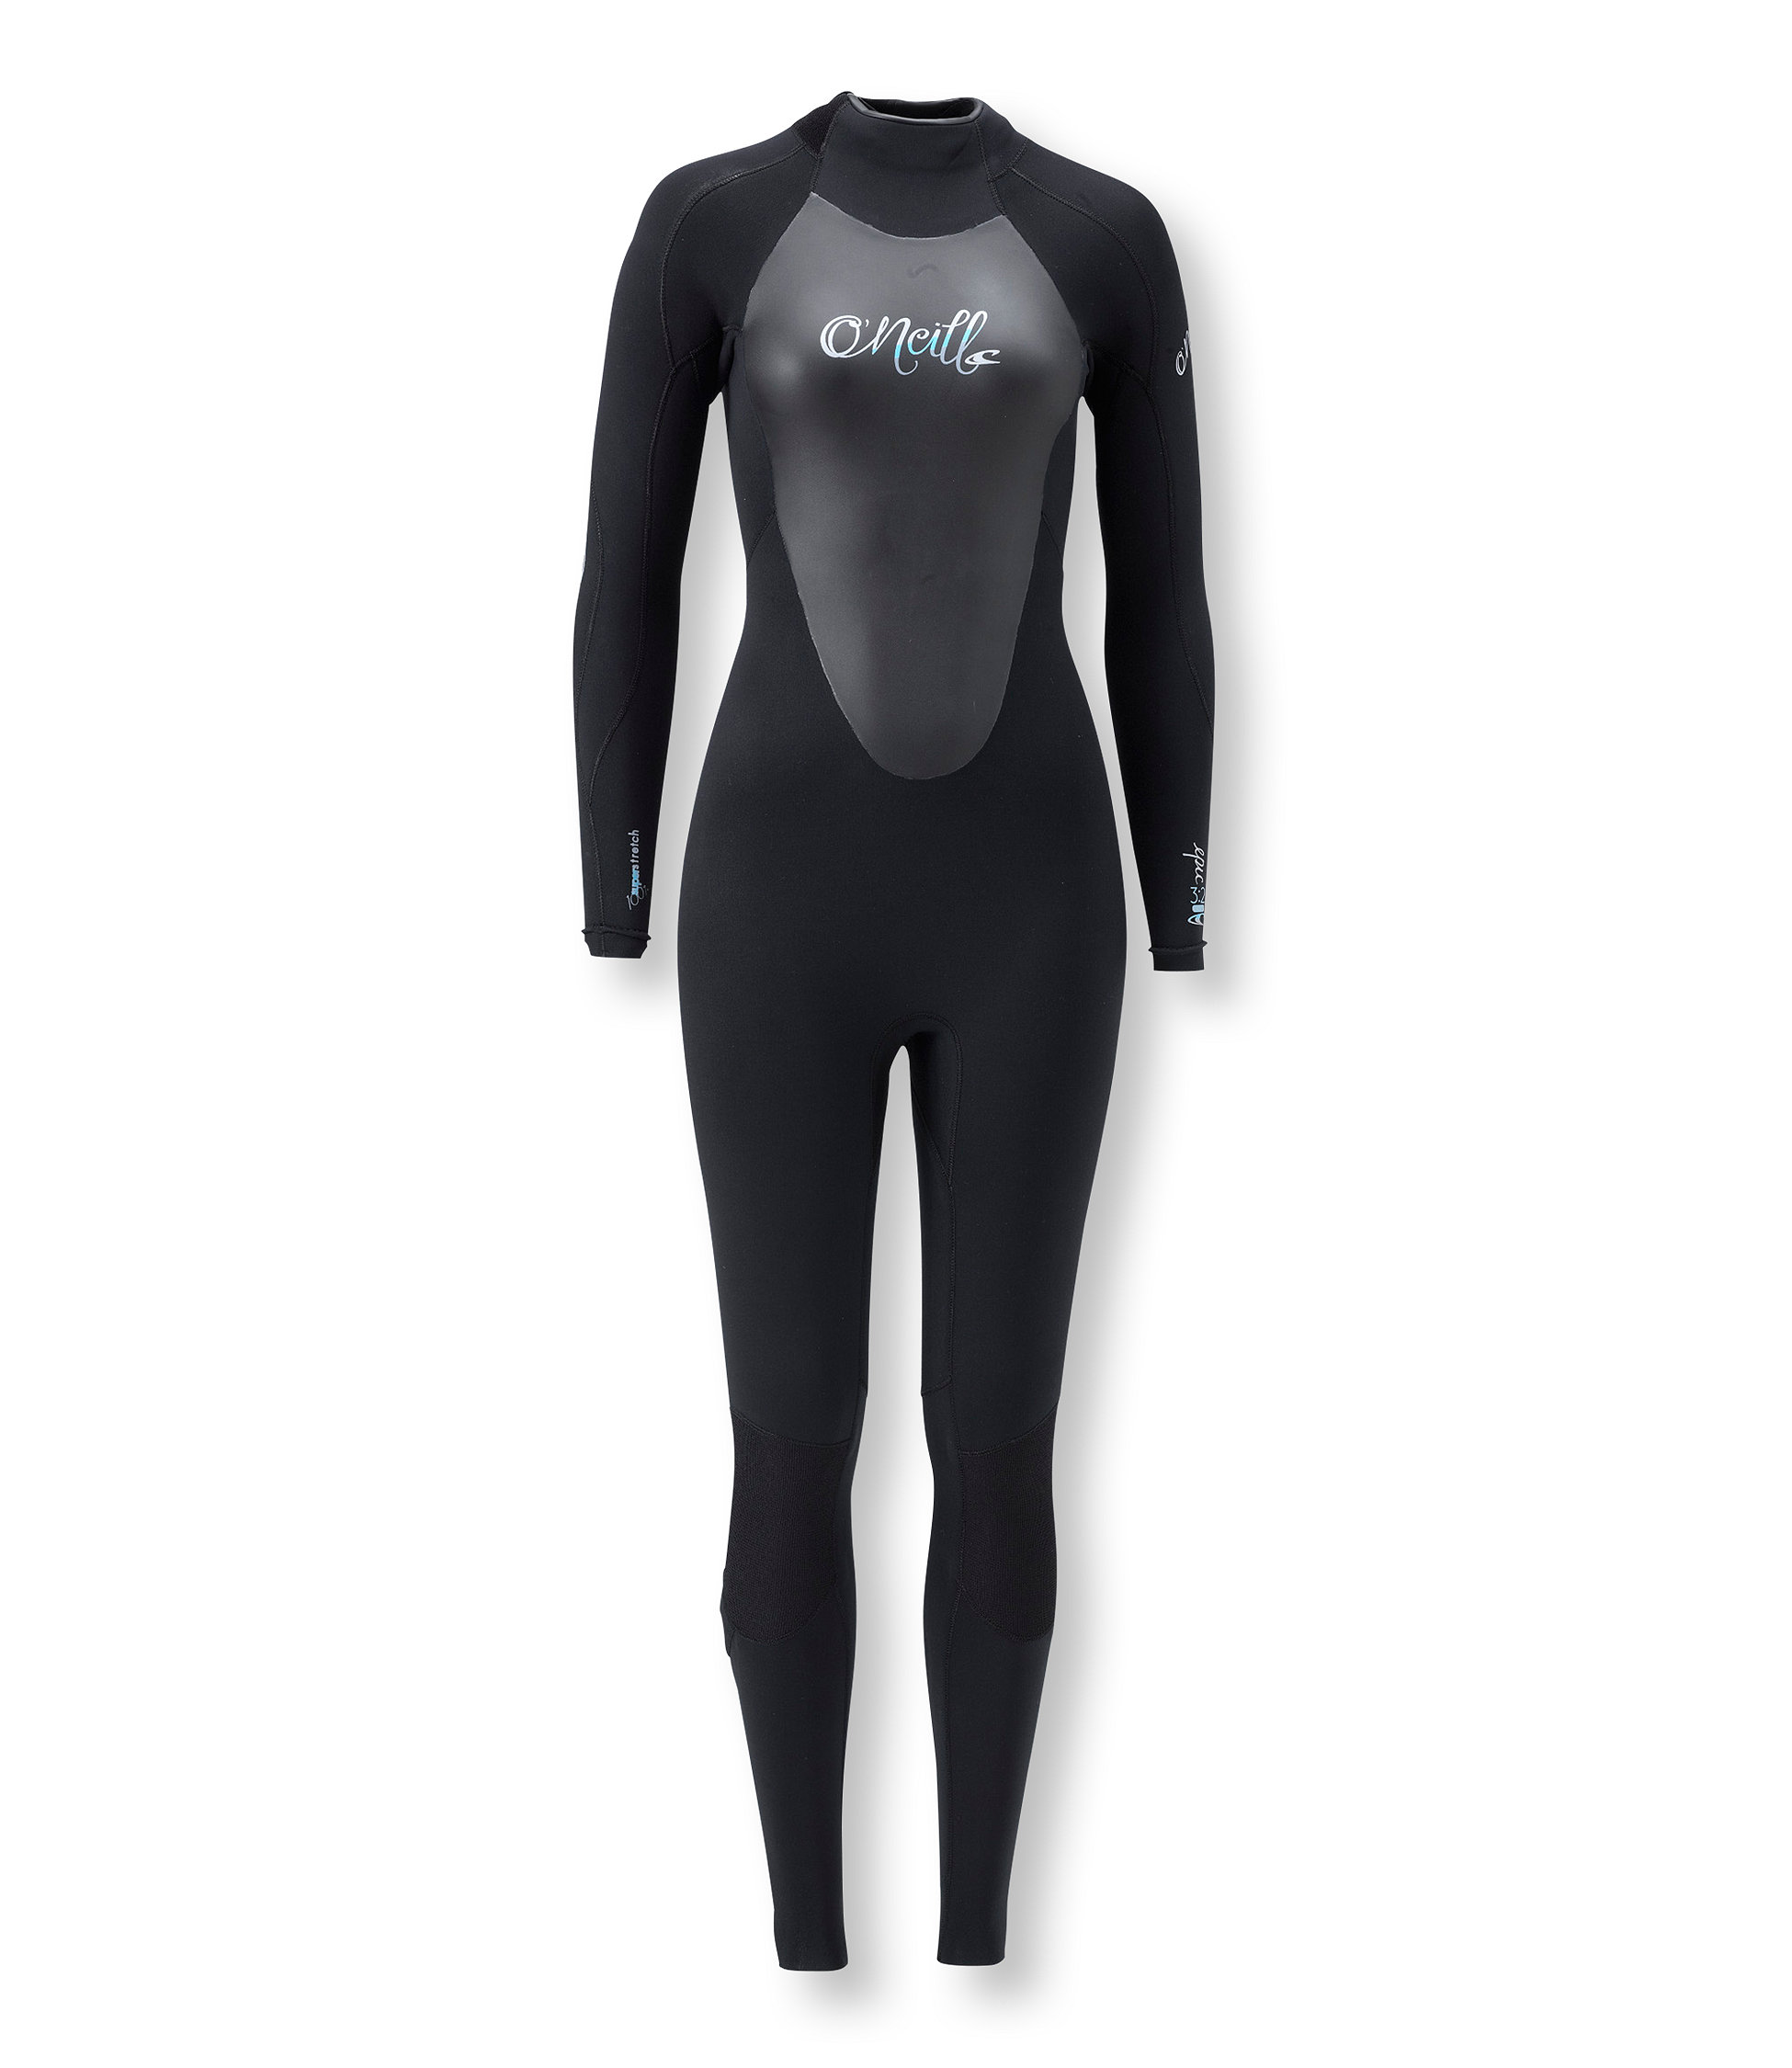 O'Neill Epic II 3/2 Full Wetsuit